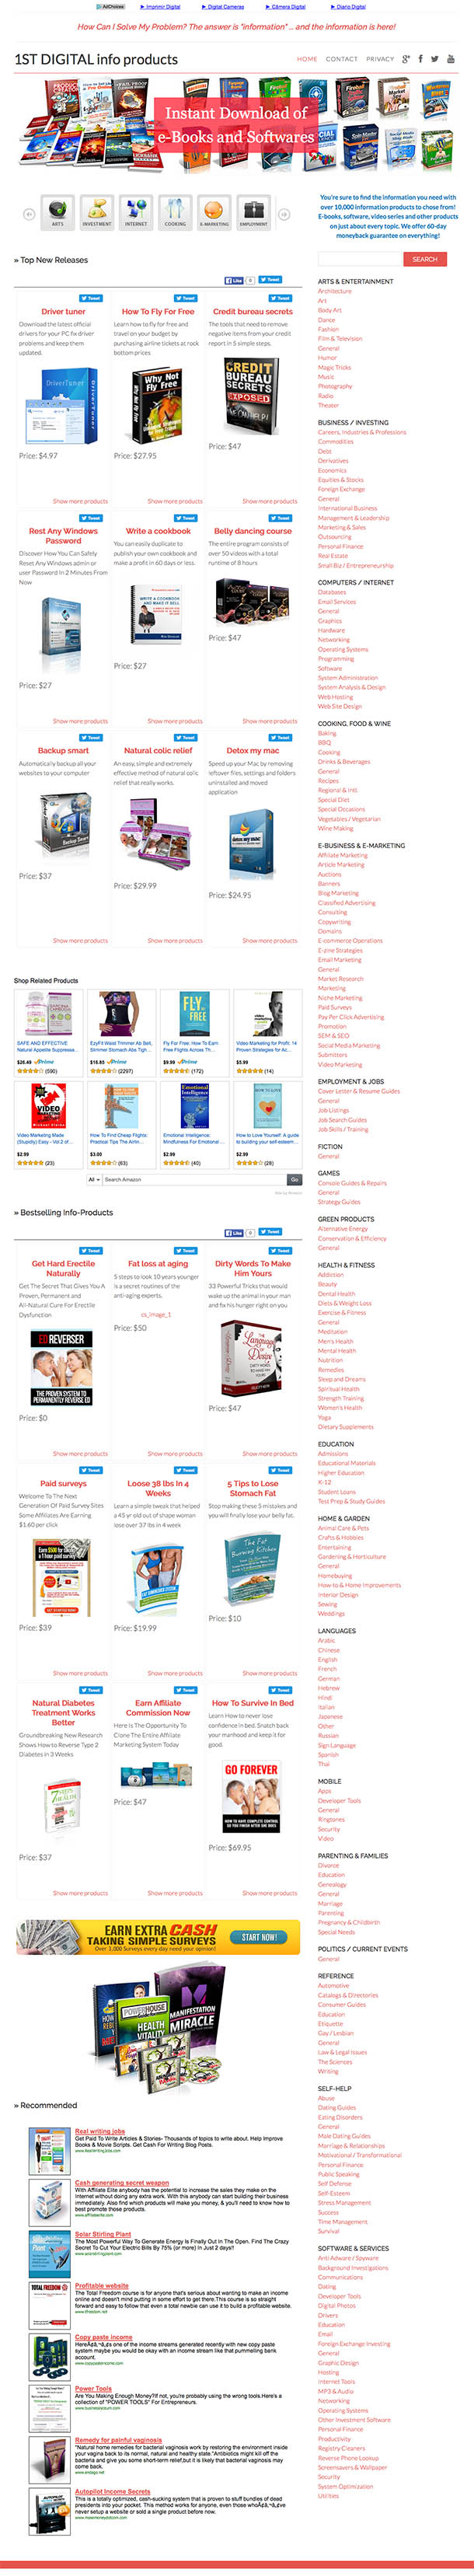 1ST_DIGITAL_info_products_–_The_World_Largest_Information_Products_Store! copy